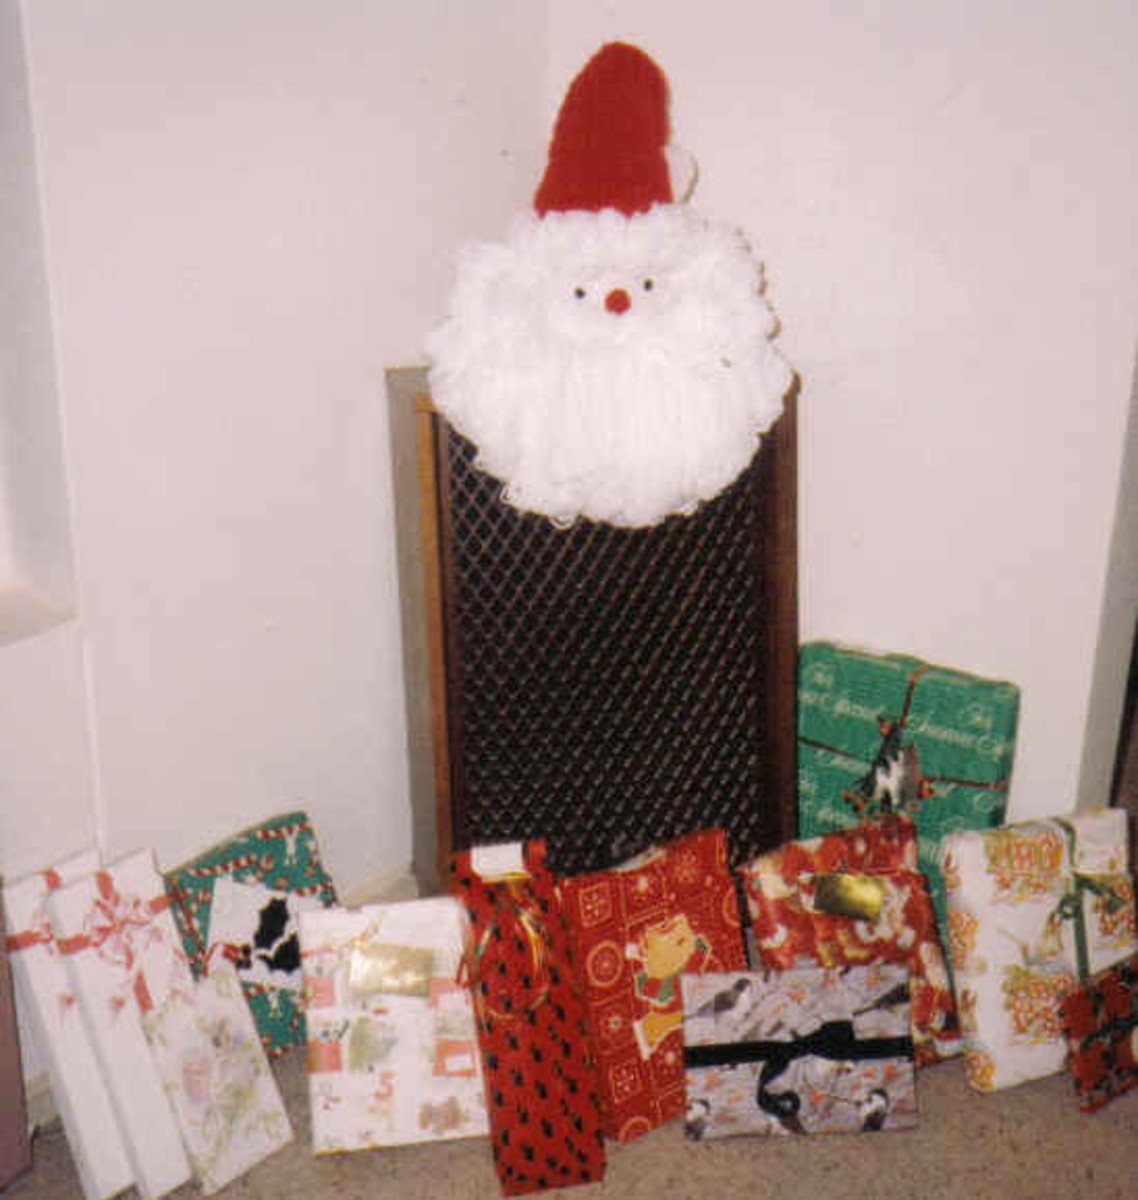 Here the Santa face perches on a stereo speaker. Surrounded by gifts, it takes the place of a Christmas tree in an apartment that is short on space.